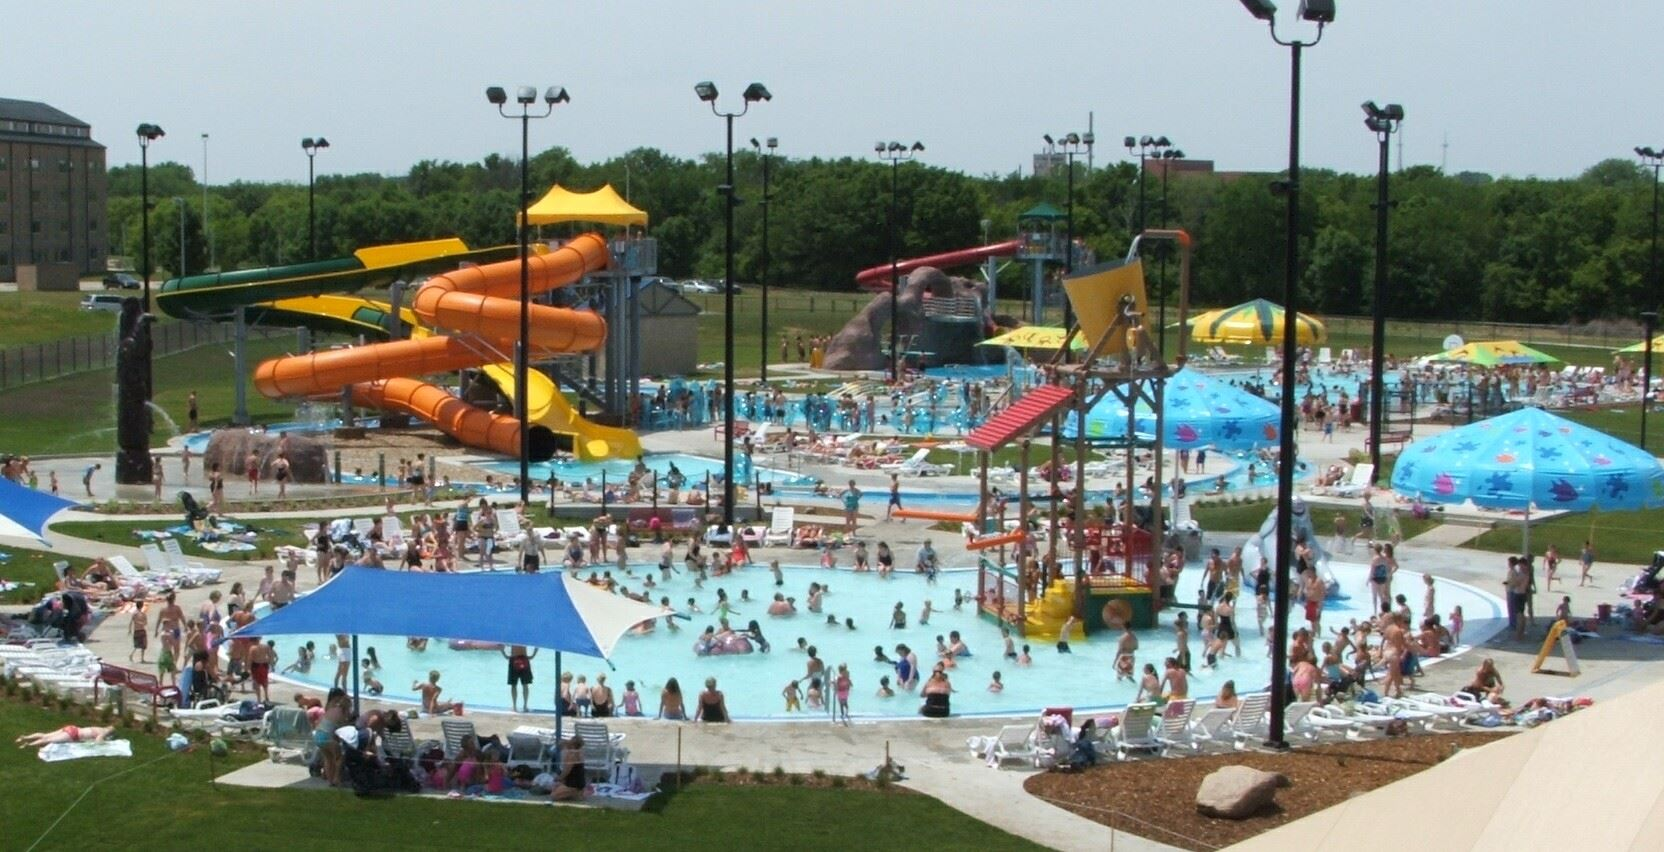 The Falls Aquatic Center